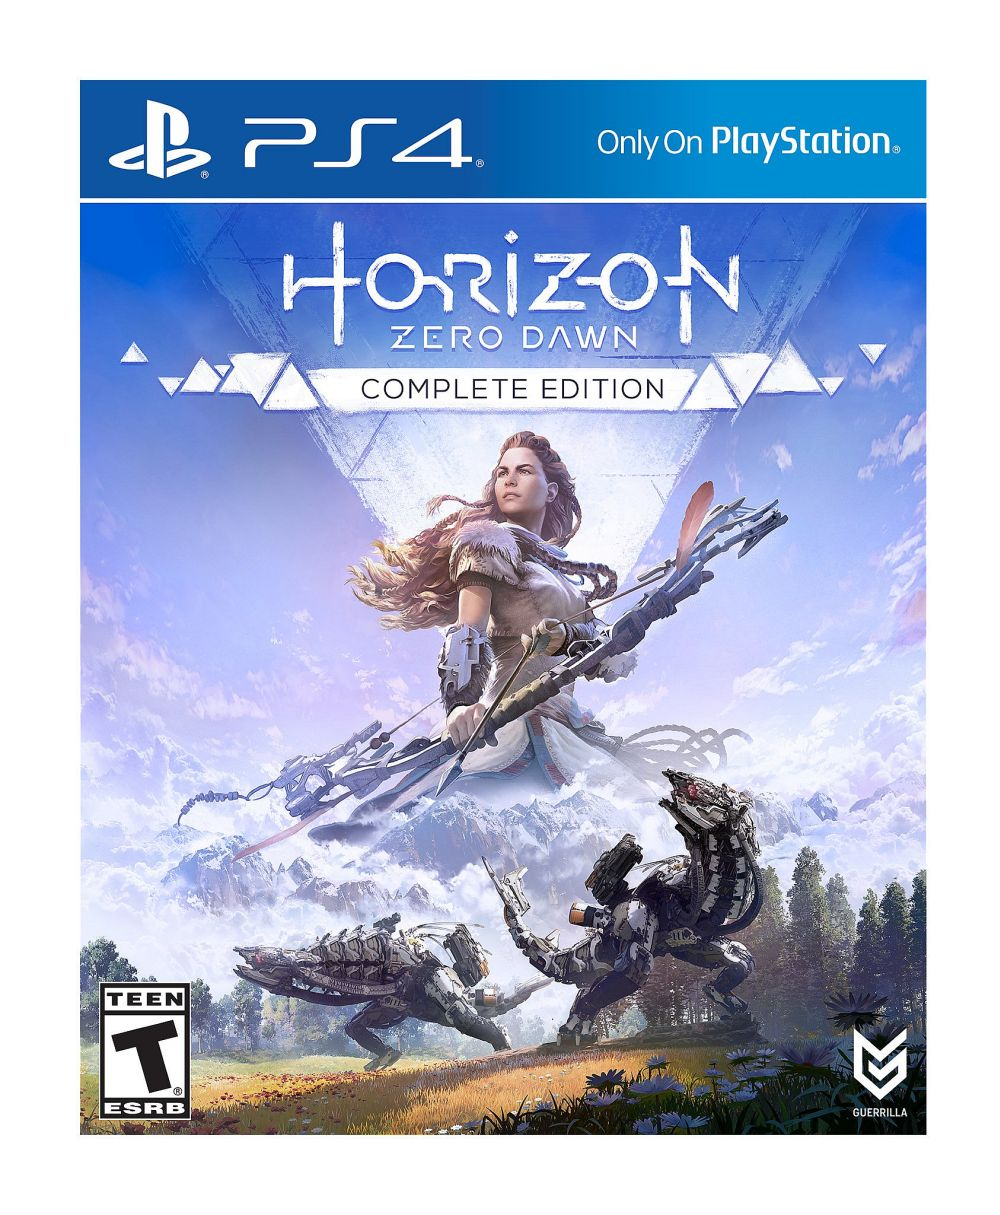 Horizon Zero Dawn Complete Edition Out In December